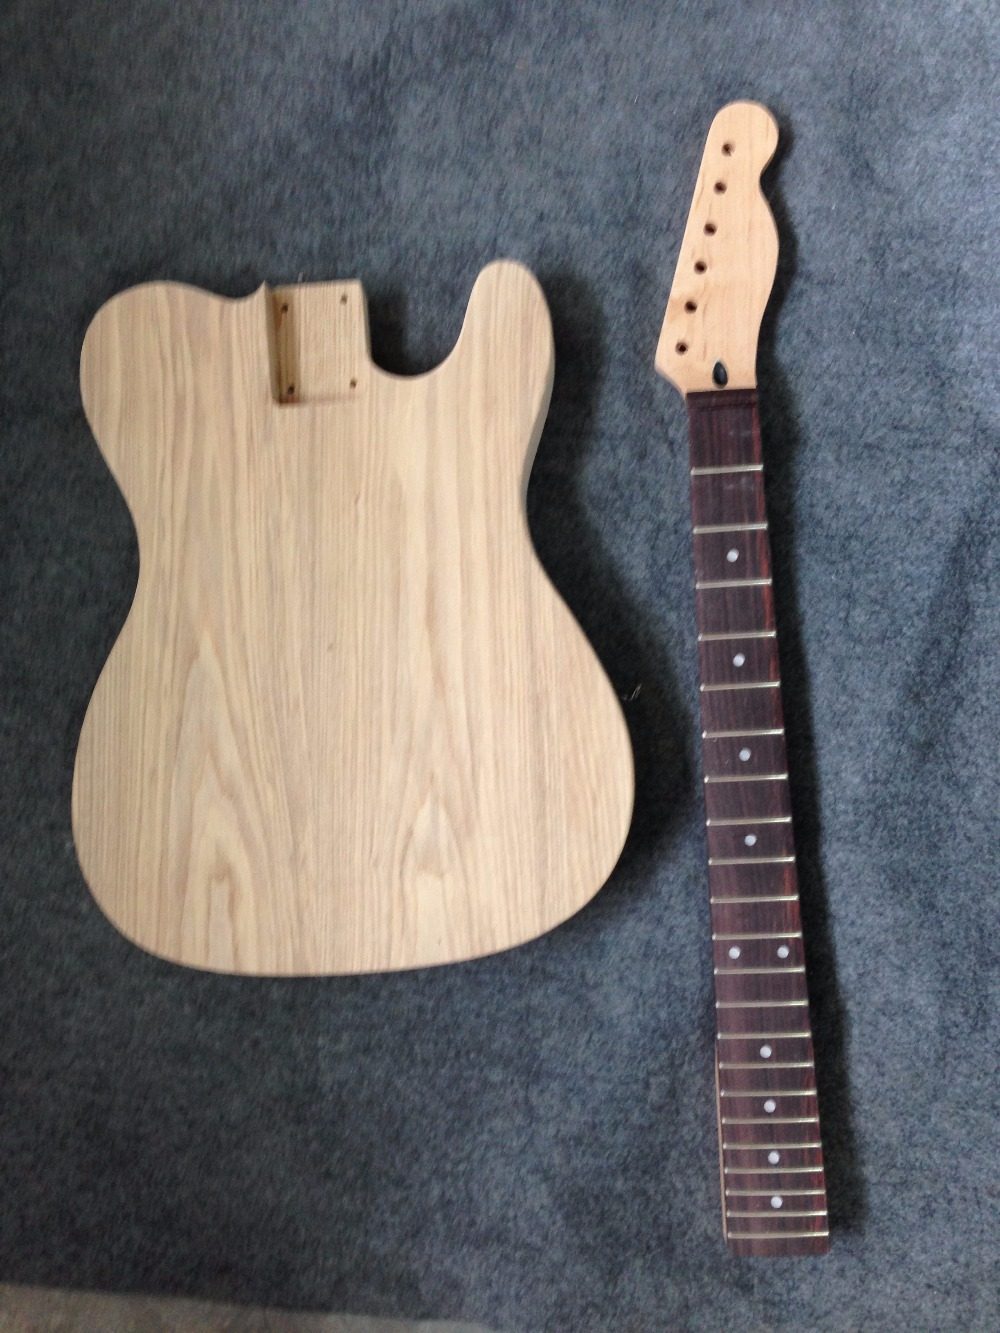 factory sell ash body tl guitar kits diy guitar no painting no including parts in guitar from. Black Bedroom Furniture Sets. Home Design Ideas